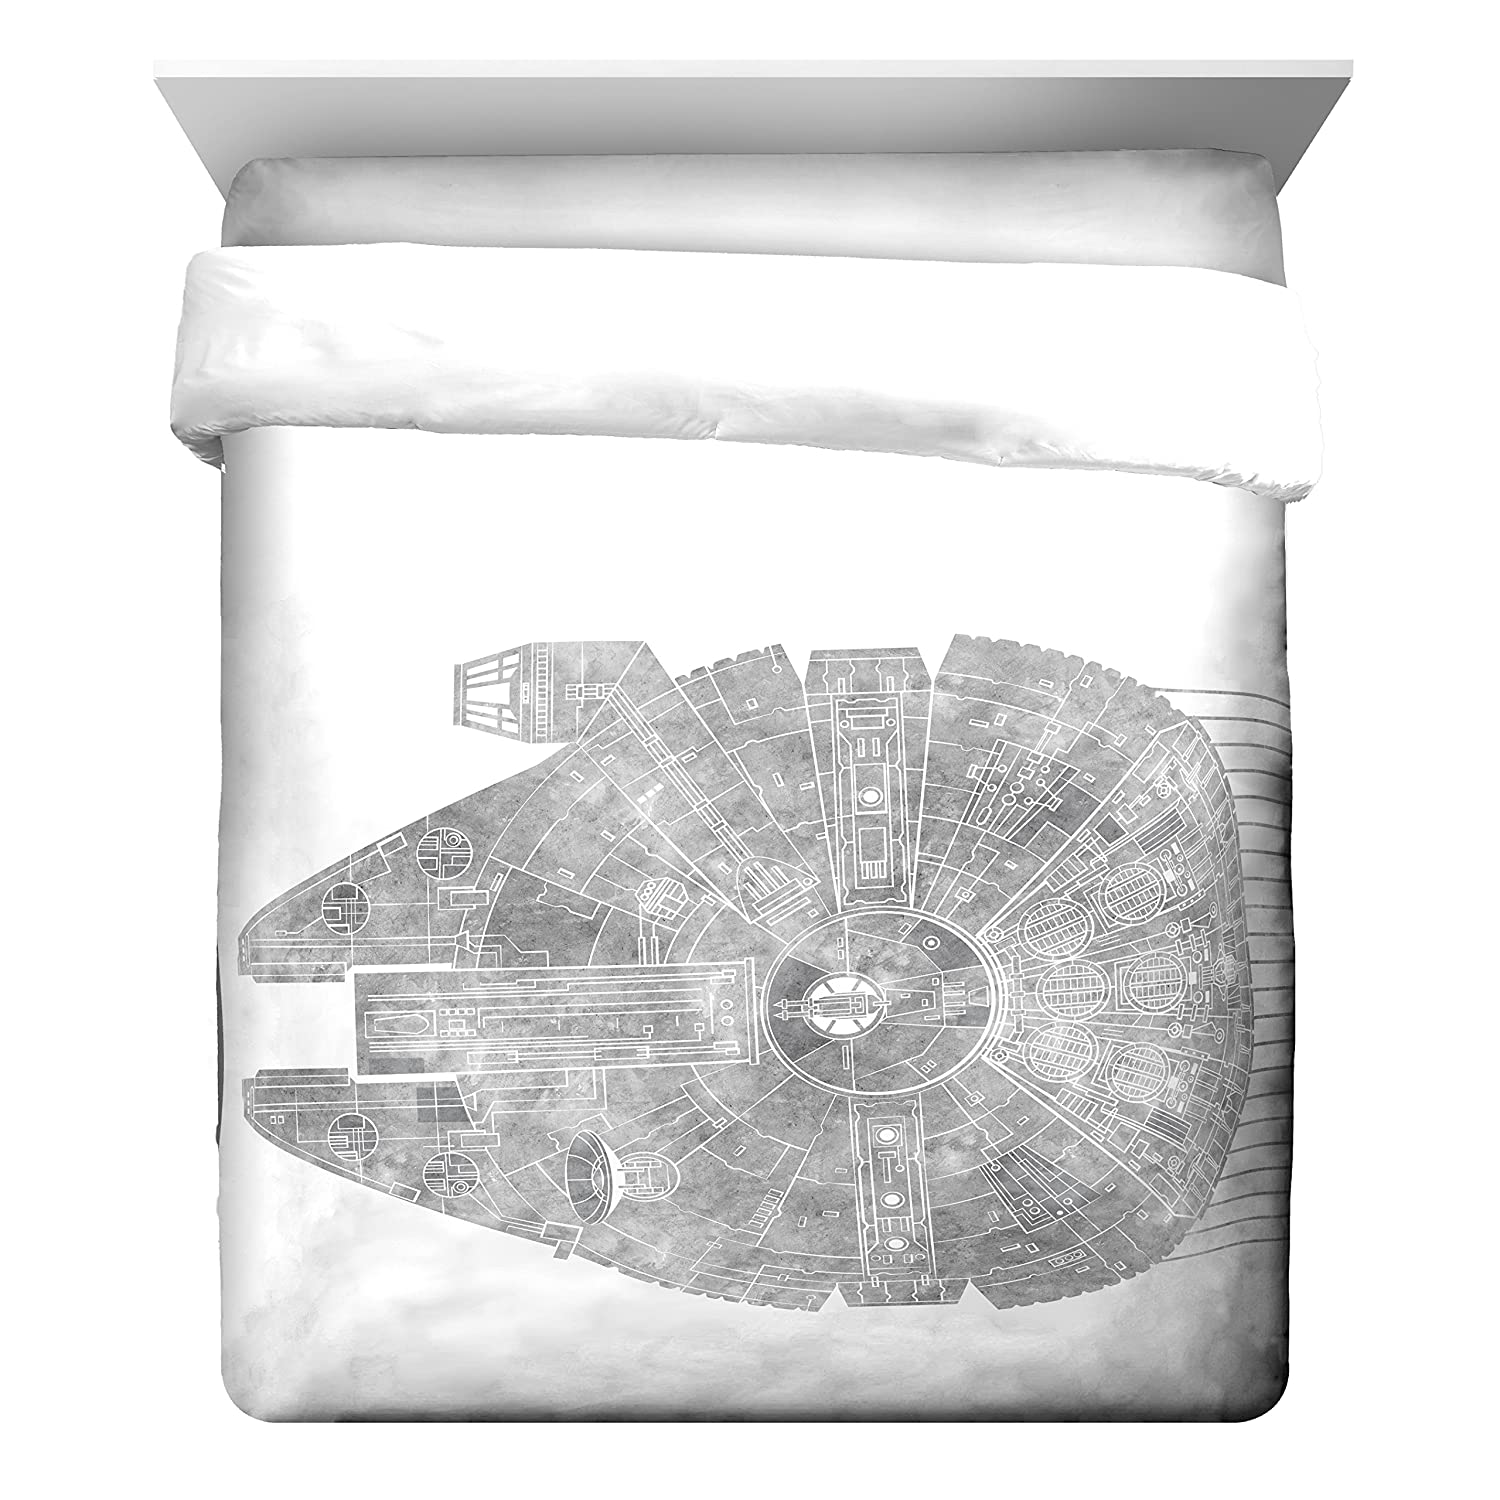 Star Wars Classic Falcon / California King Comforter - Super Soft Kids Reversible Bedding features the Millennium Falcon - Fade Resistant Polyester Microfiber Fill (Official Star Wars Product)